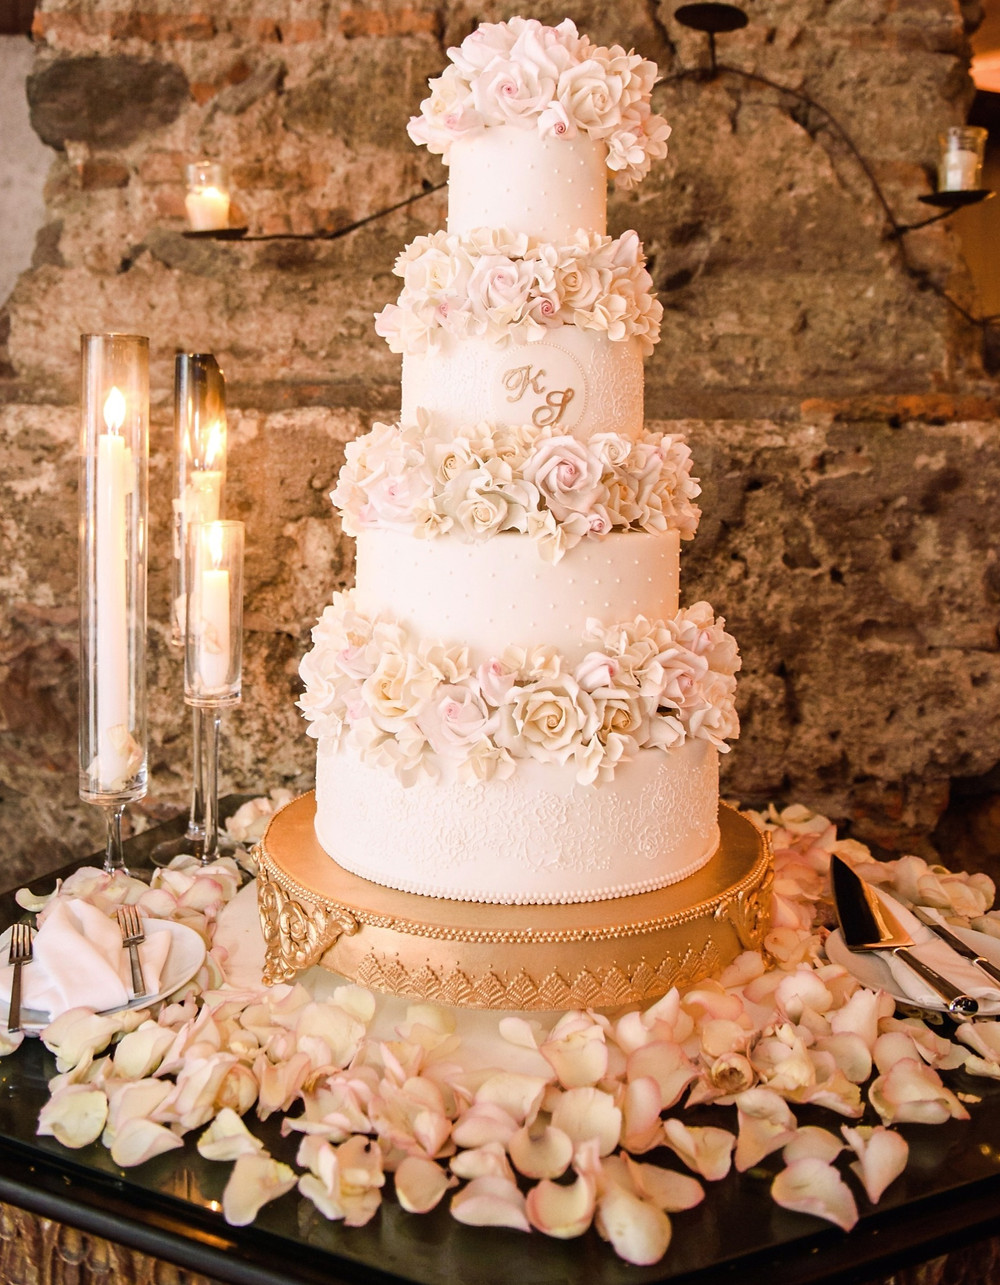 4-tier-wedding-cake-decorated-with-pale-pink-rose-petals